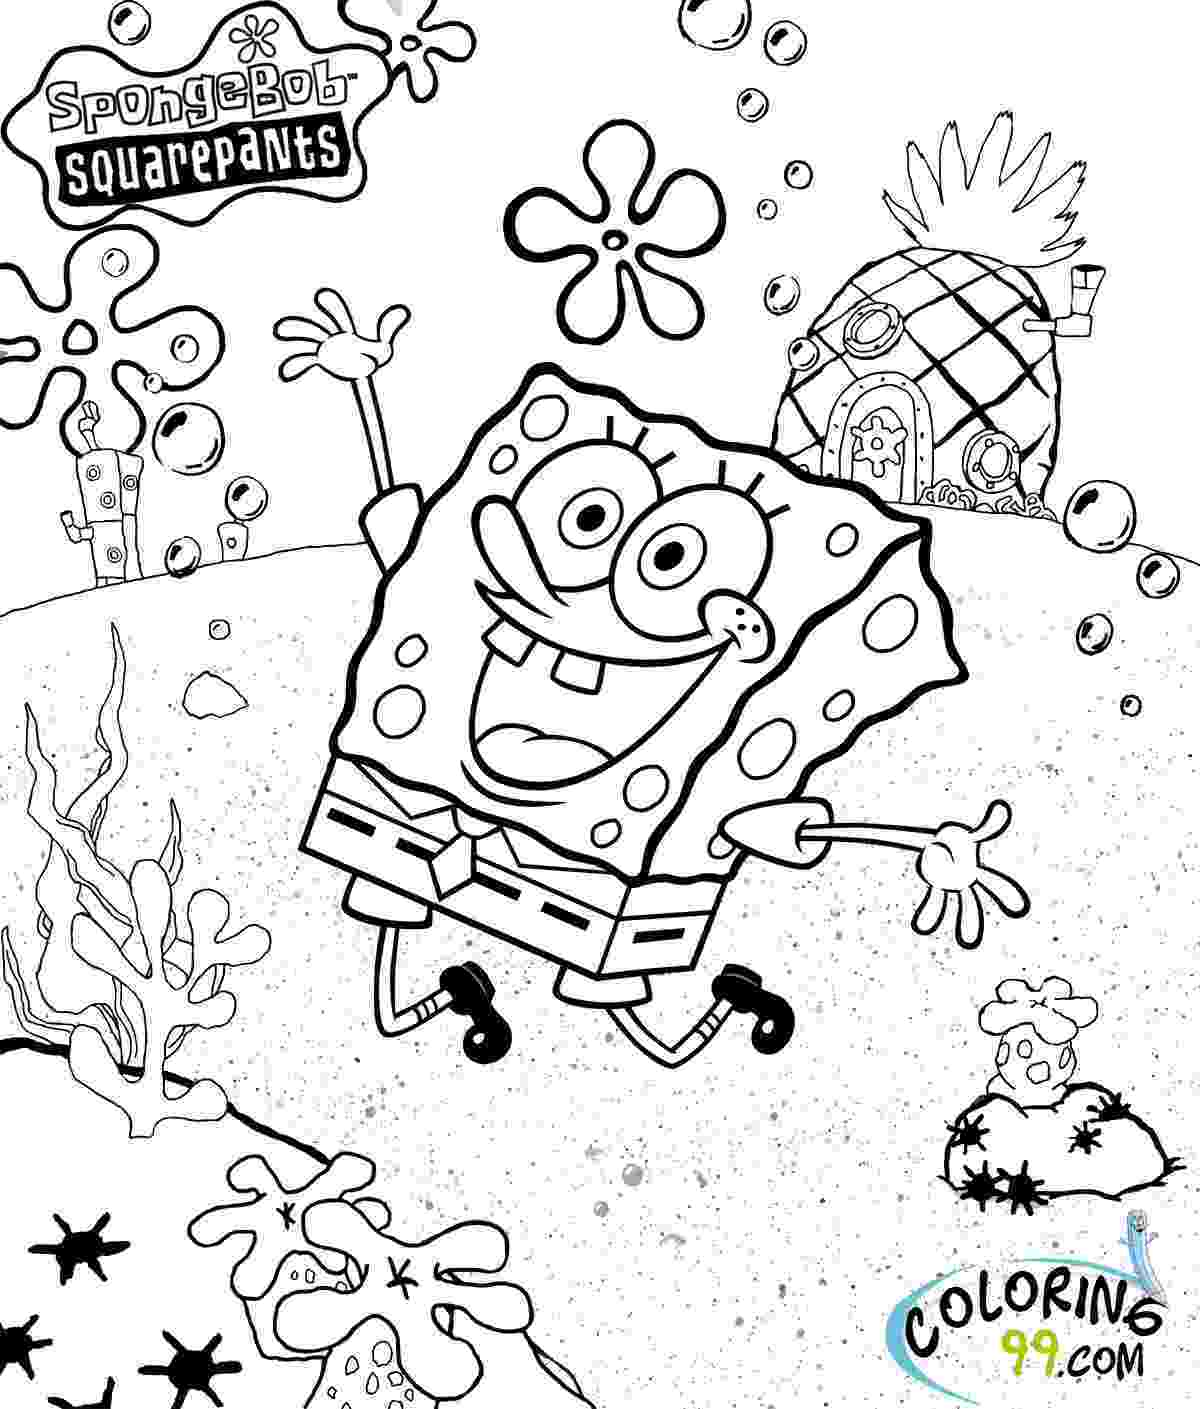 spongebob squarepants coloring sheets spongebob squarepants coloring pages fantasy coloring pages sheets spongebob coloring squarepants